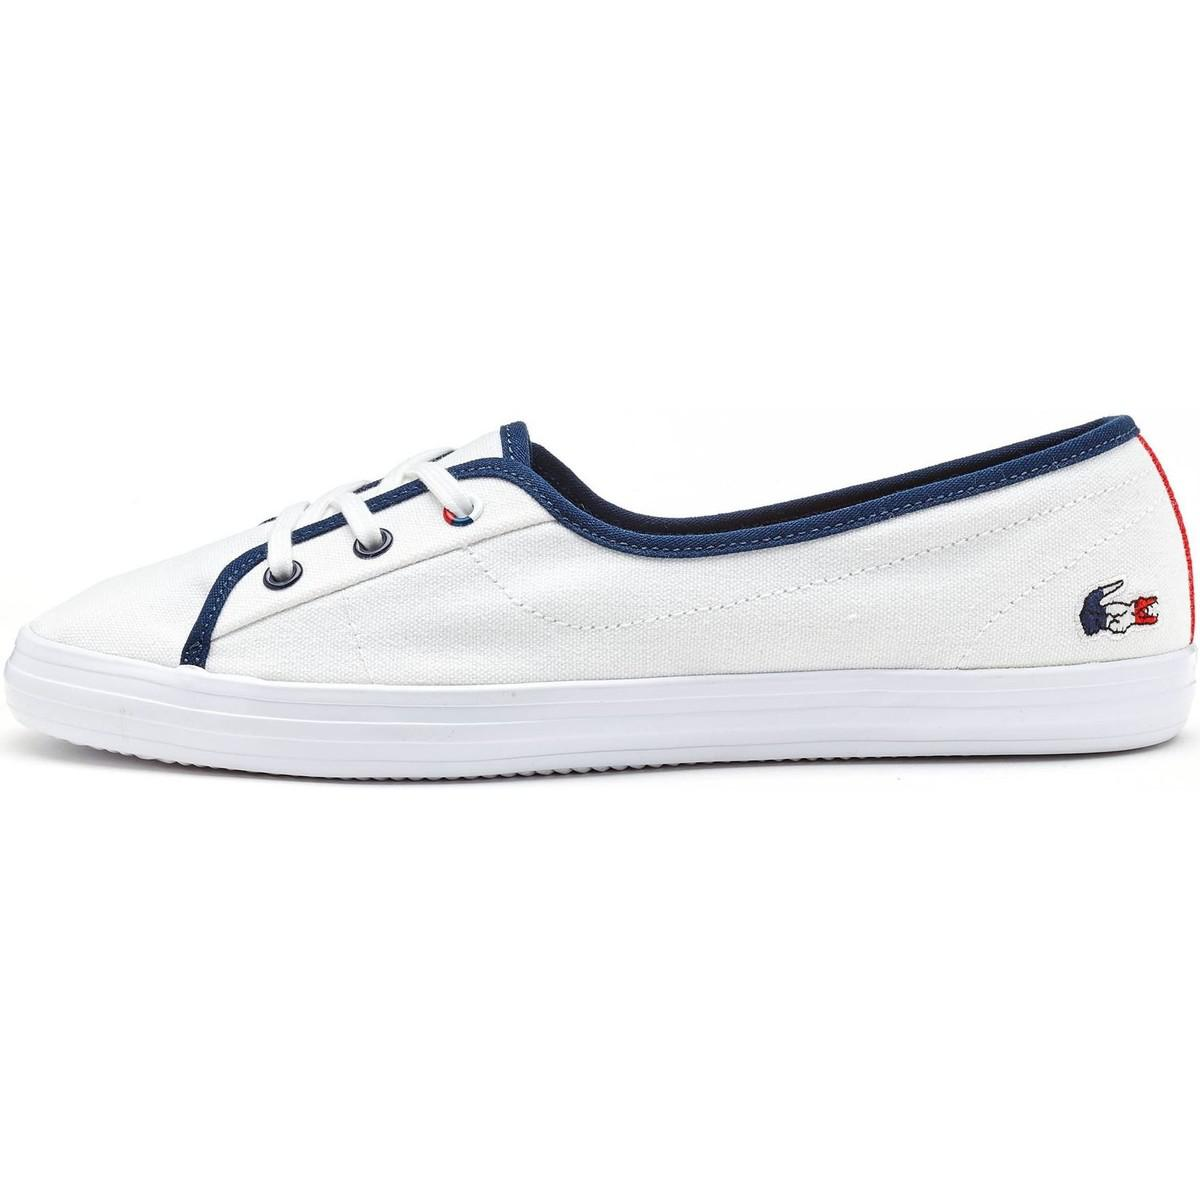 7017b962fde146 Lacoste Ziane Chunky 317 1 Caw Trainers In White 734caw0063 001 ...